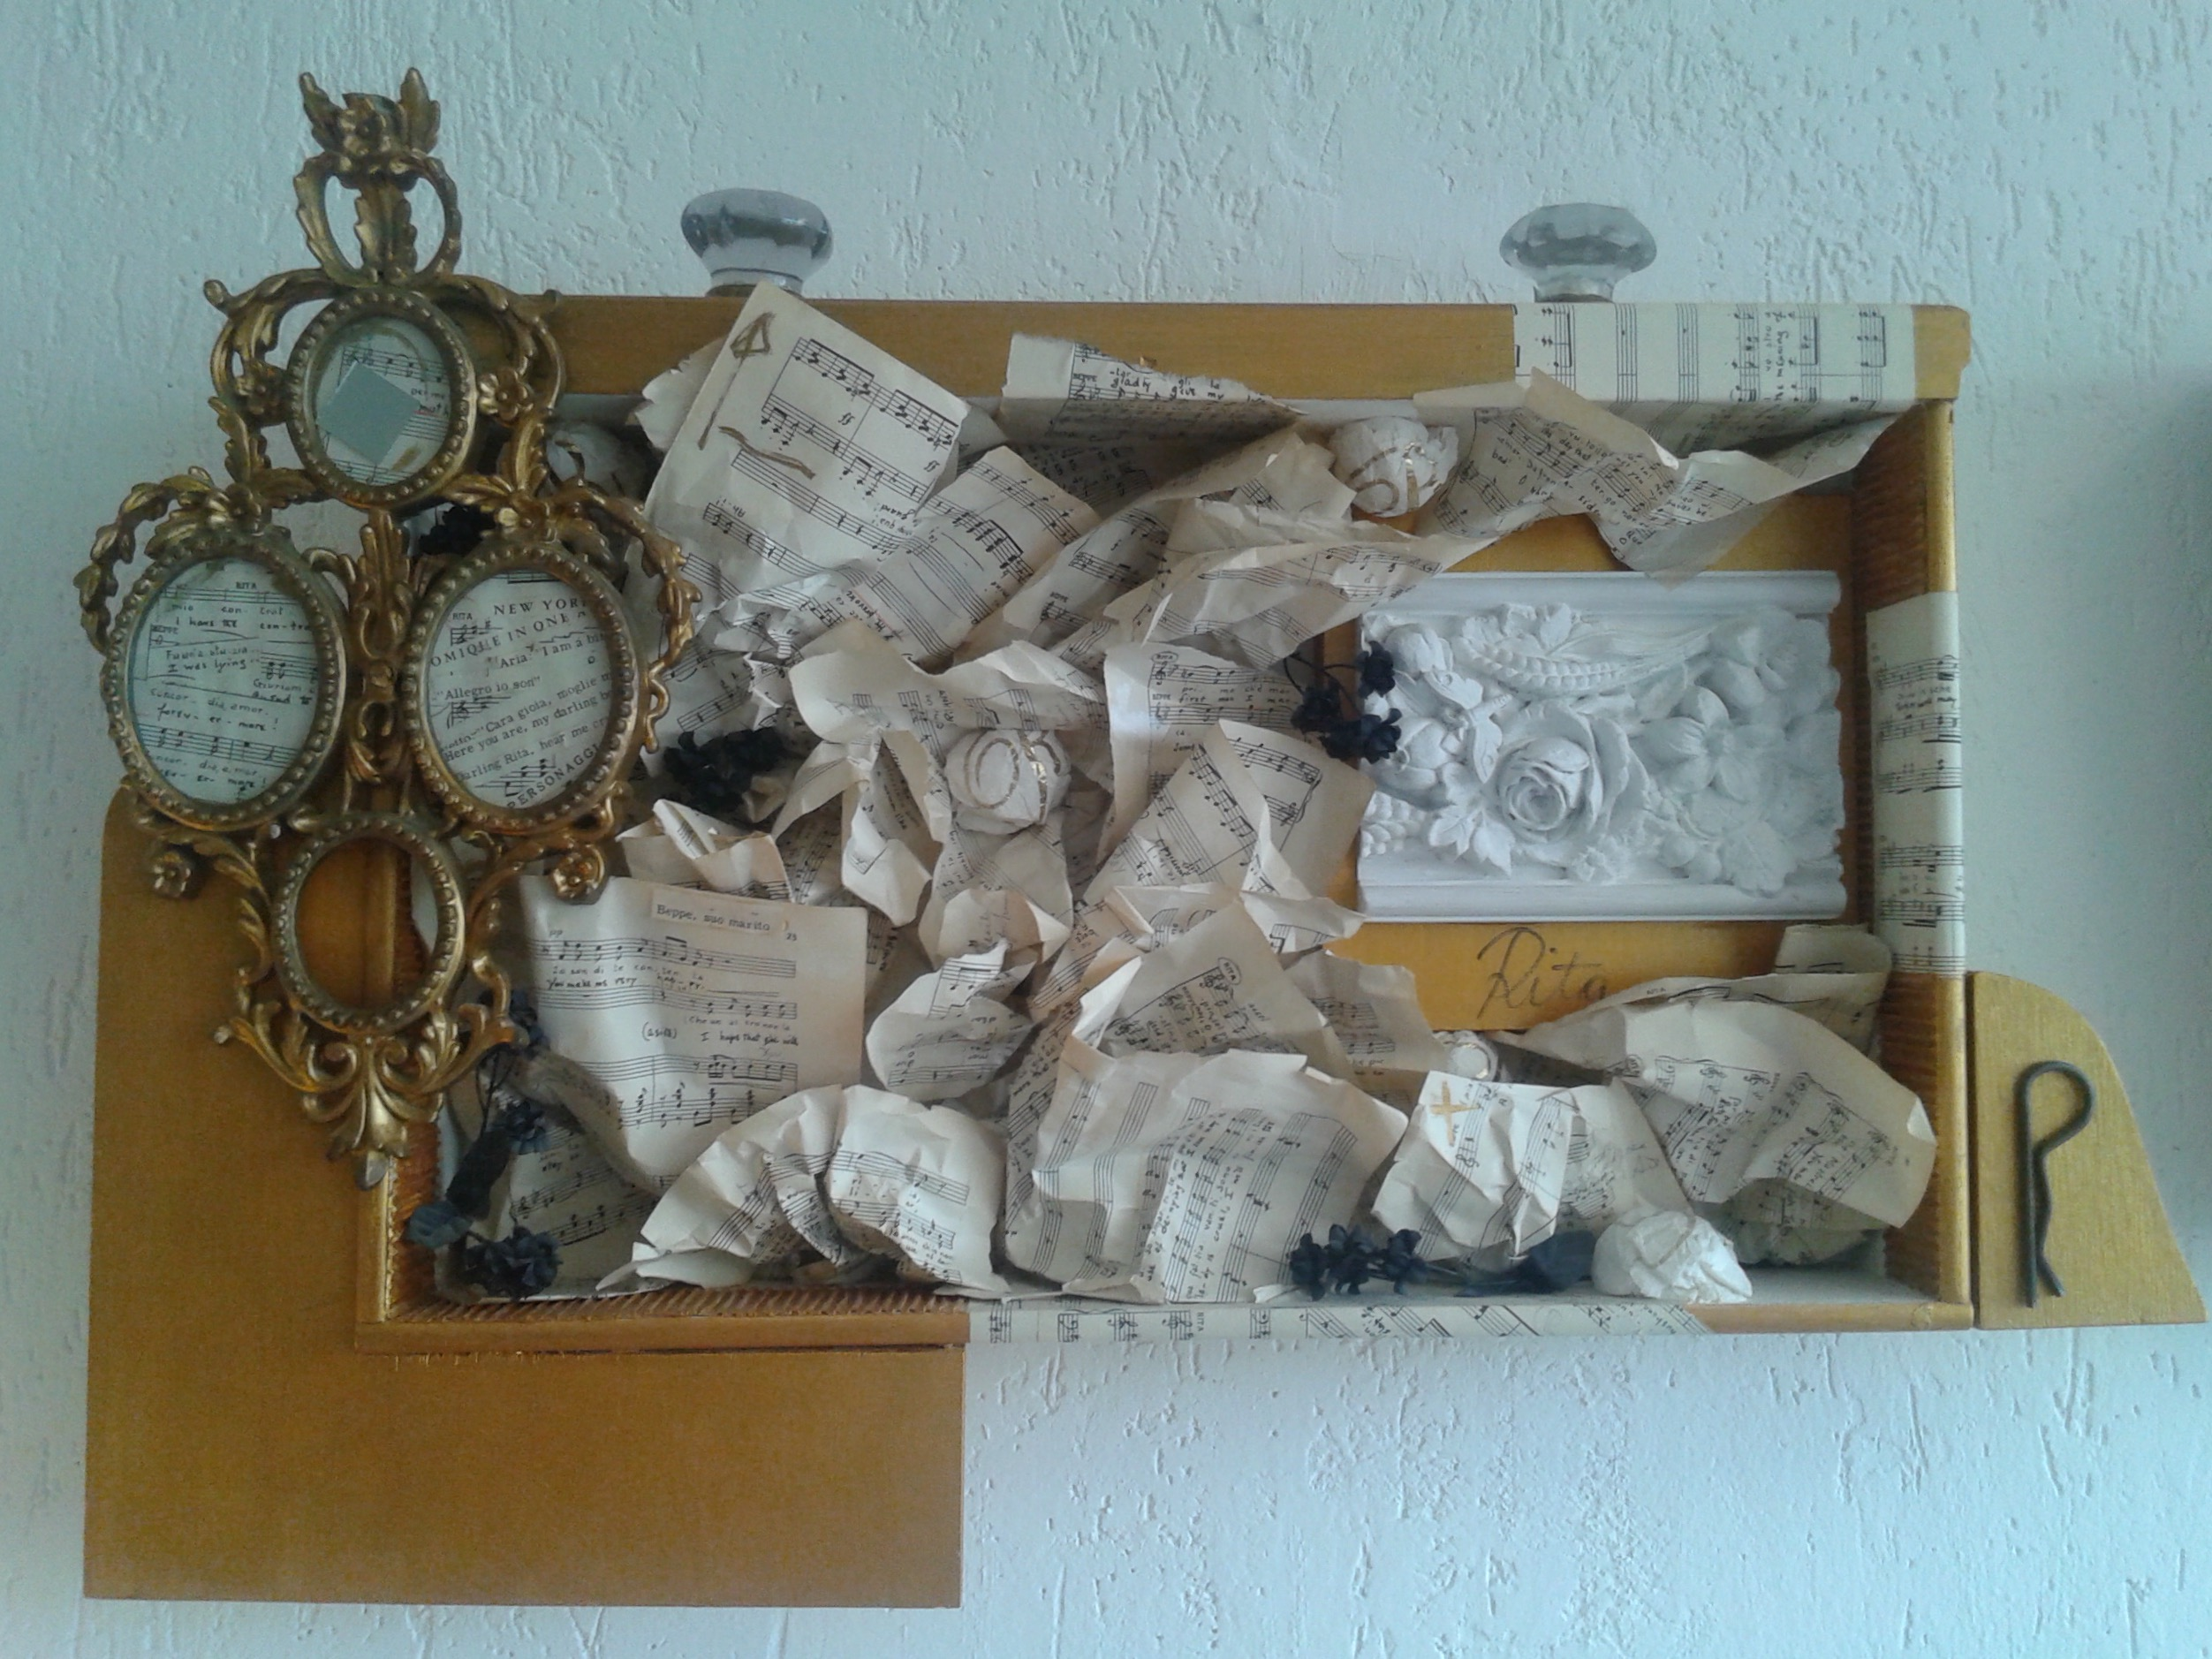 Mirror tirroir, triptych, assemblage, drawers, found objects, photos, 24 x 94 inches, 60 x 220 cm